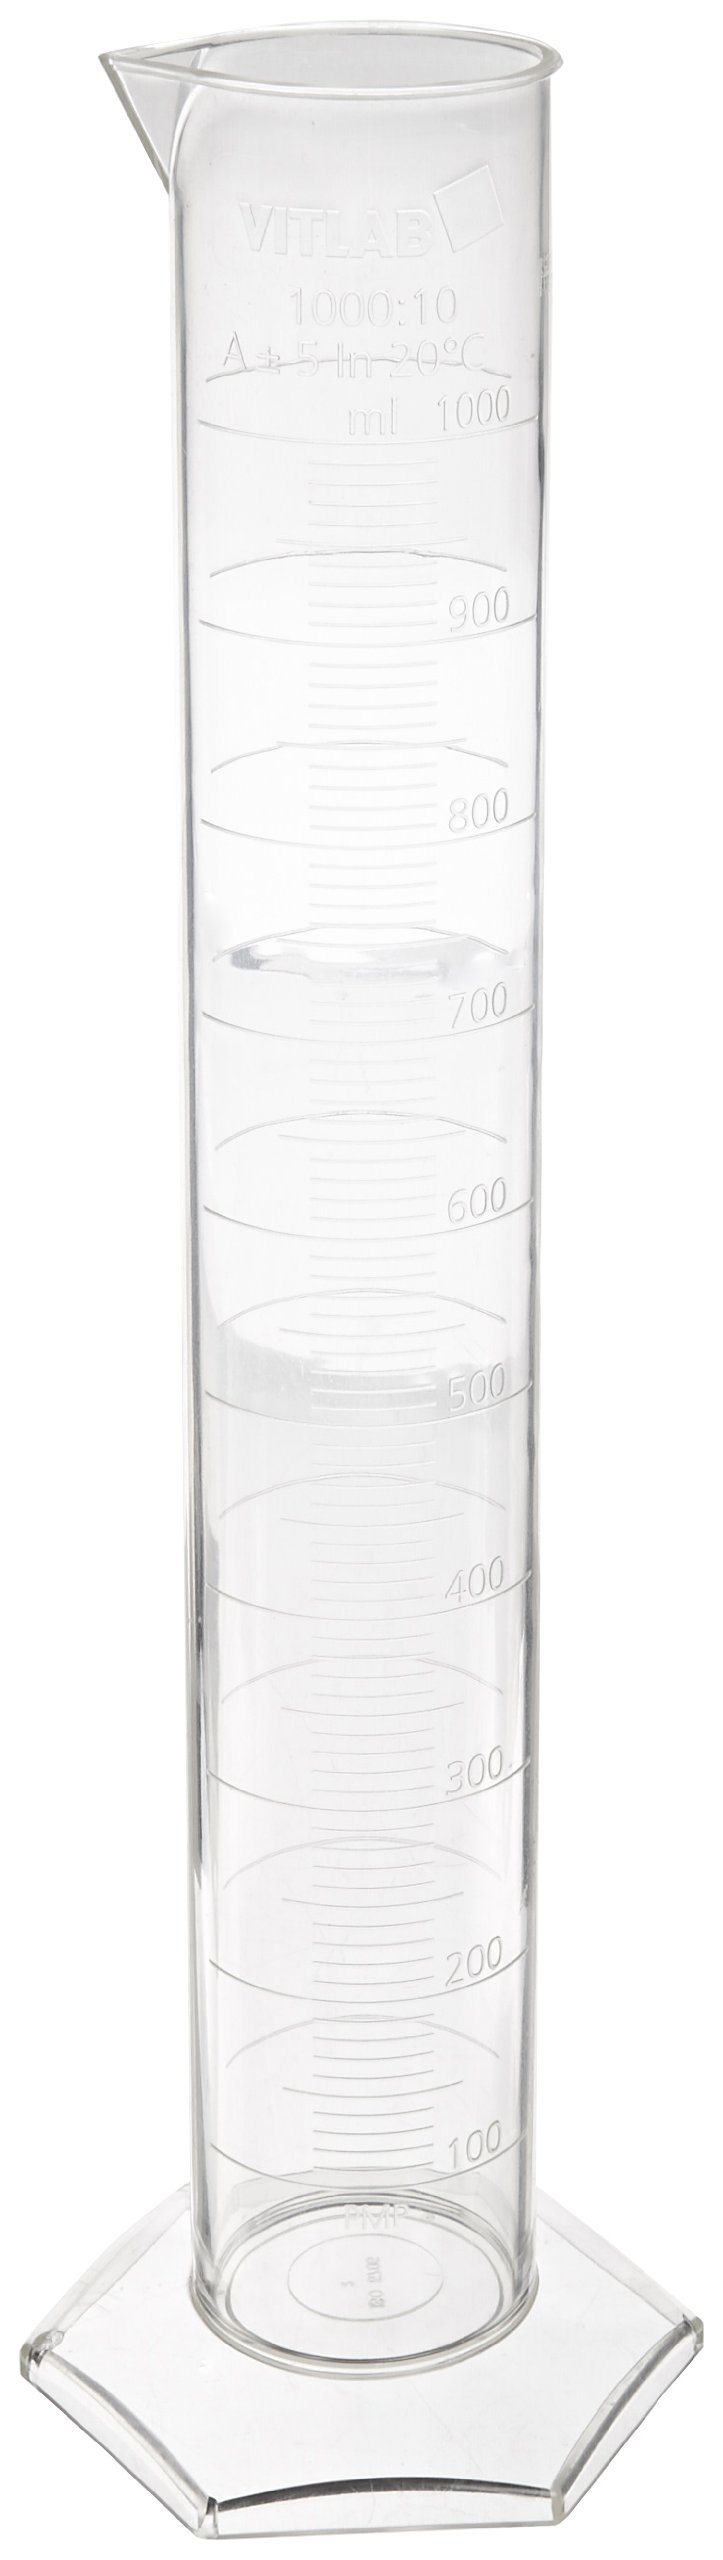 Vitlab Class A Certified Polymethylpentene Graduated Cylinder, 1000ml Capacity